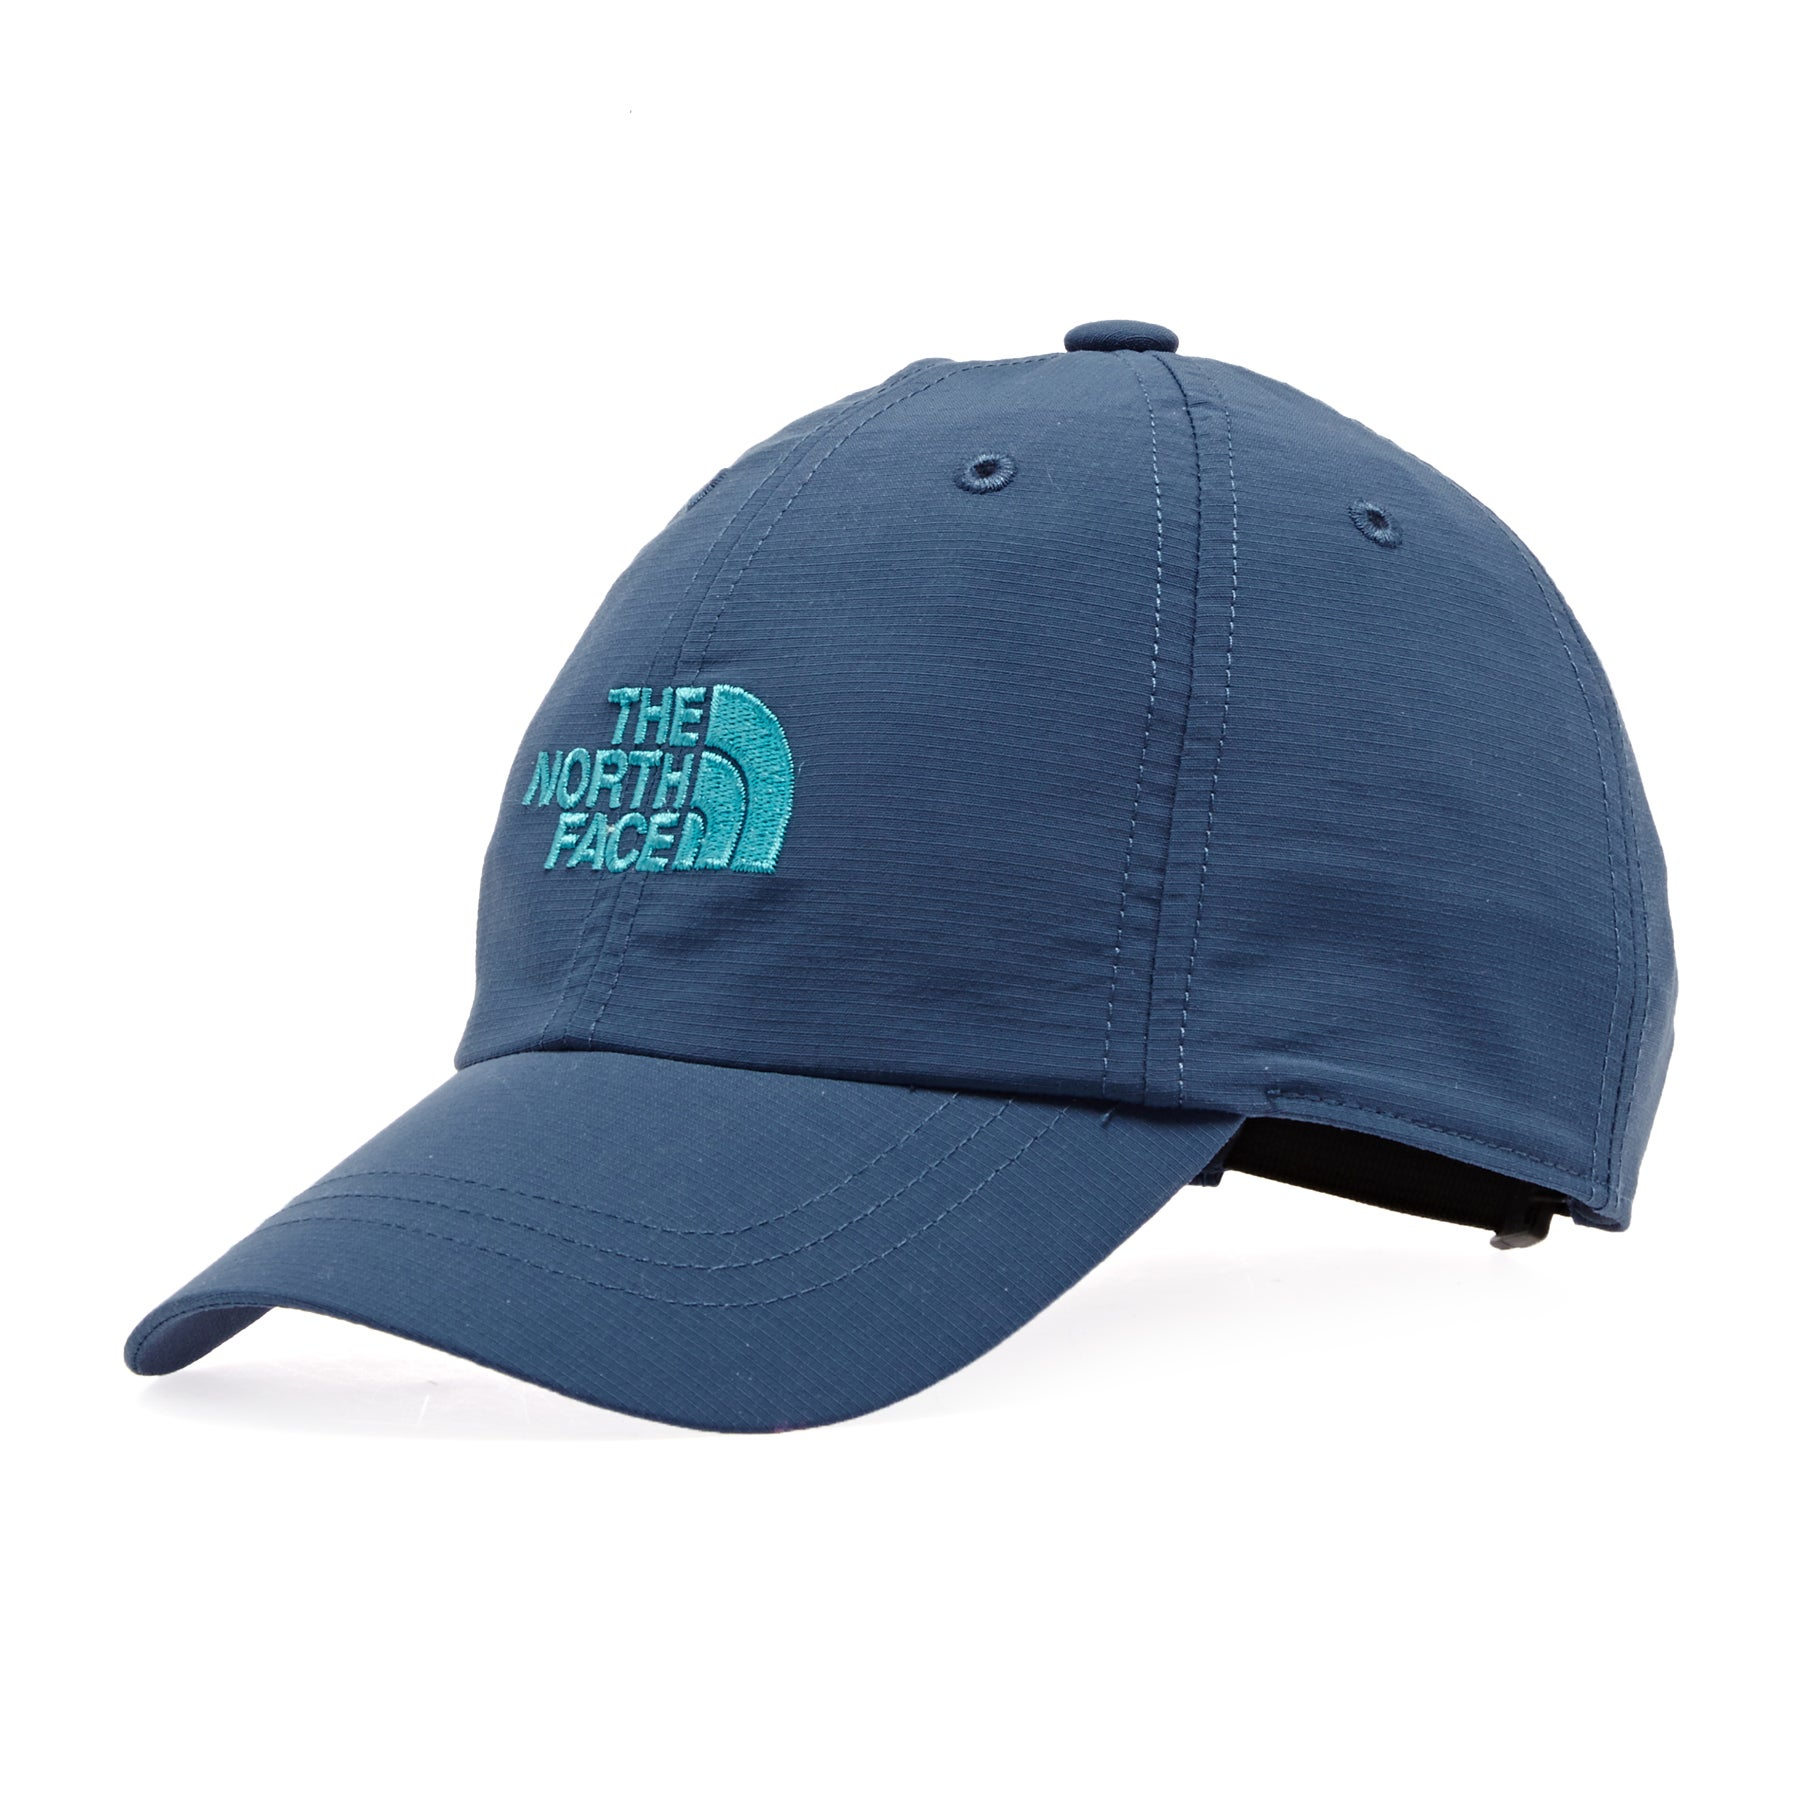 Casquette Enfant North Face Horizon - Shady Blue Caribbean Sea